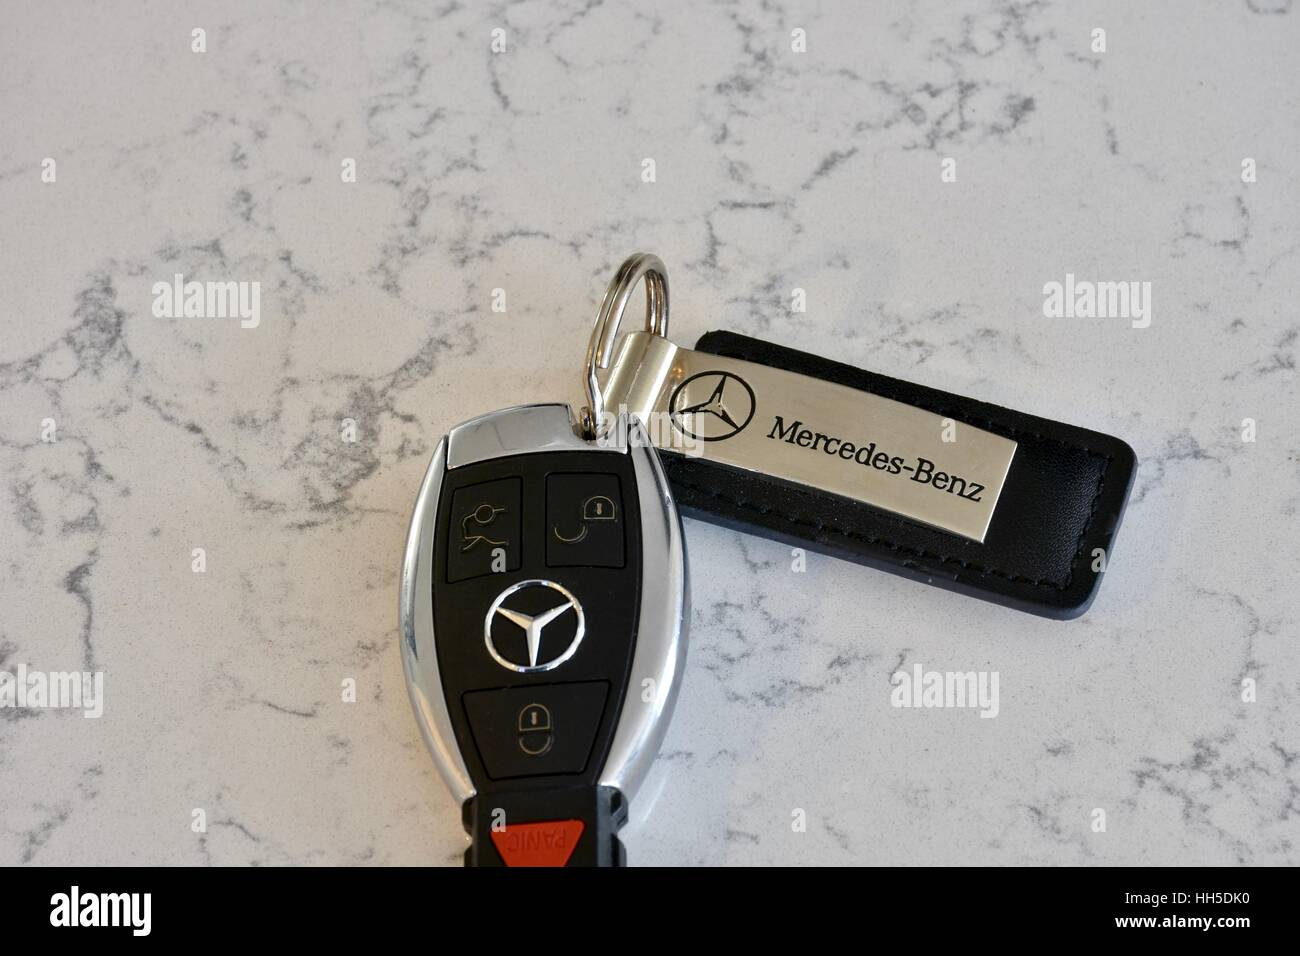 Mercedes Benz key fob on a white marble surface Stock Photo